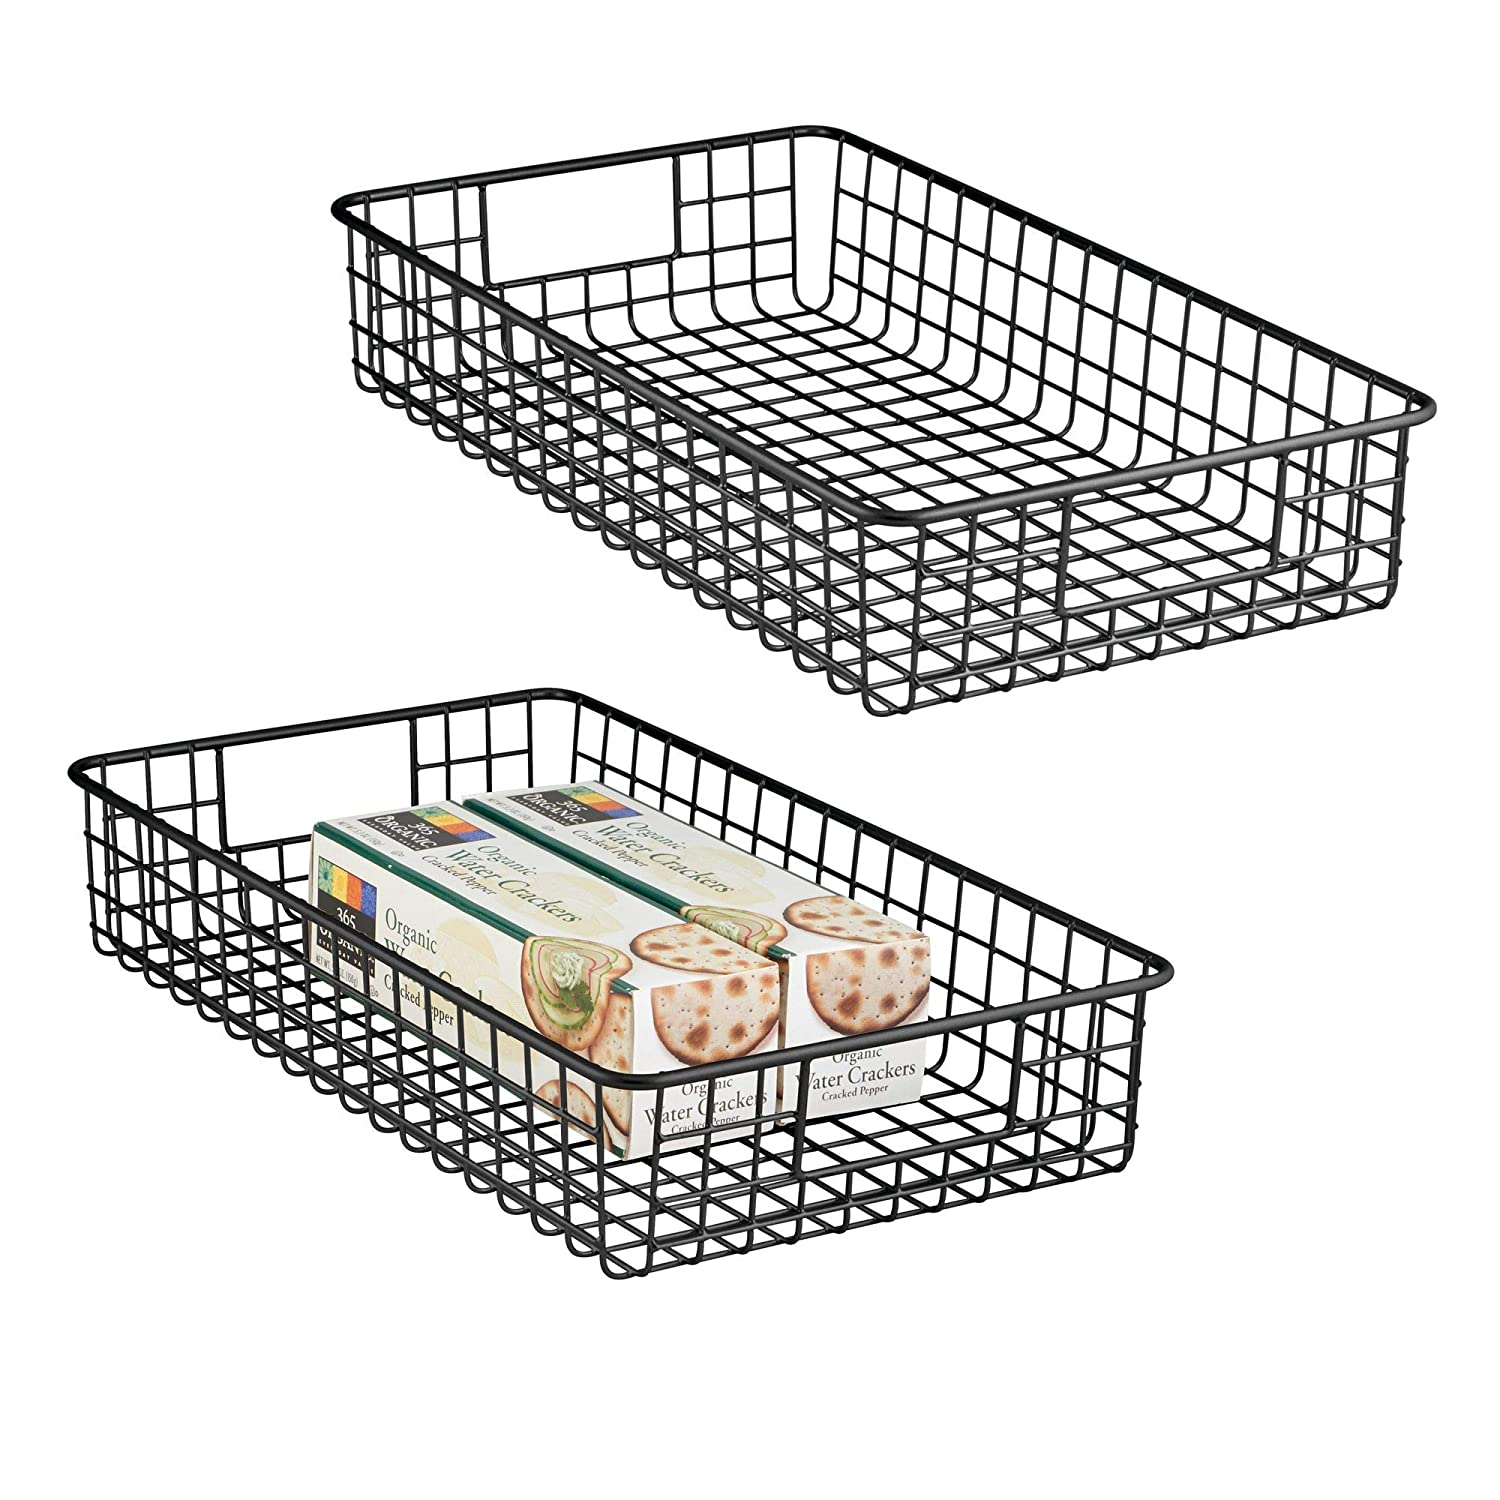 amazon mdesign household metal wire cabinet anizer storage Wire Storage Bins mdesign household metal wire cabinet anizer storage anizer bins baskets trays for kitchen pantry pantry fridge closets garage laundry bathroom